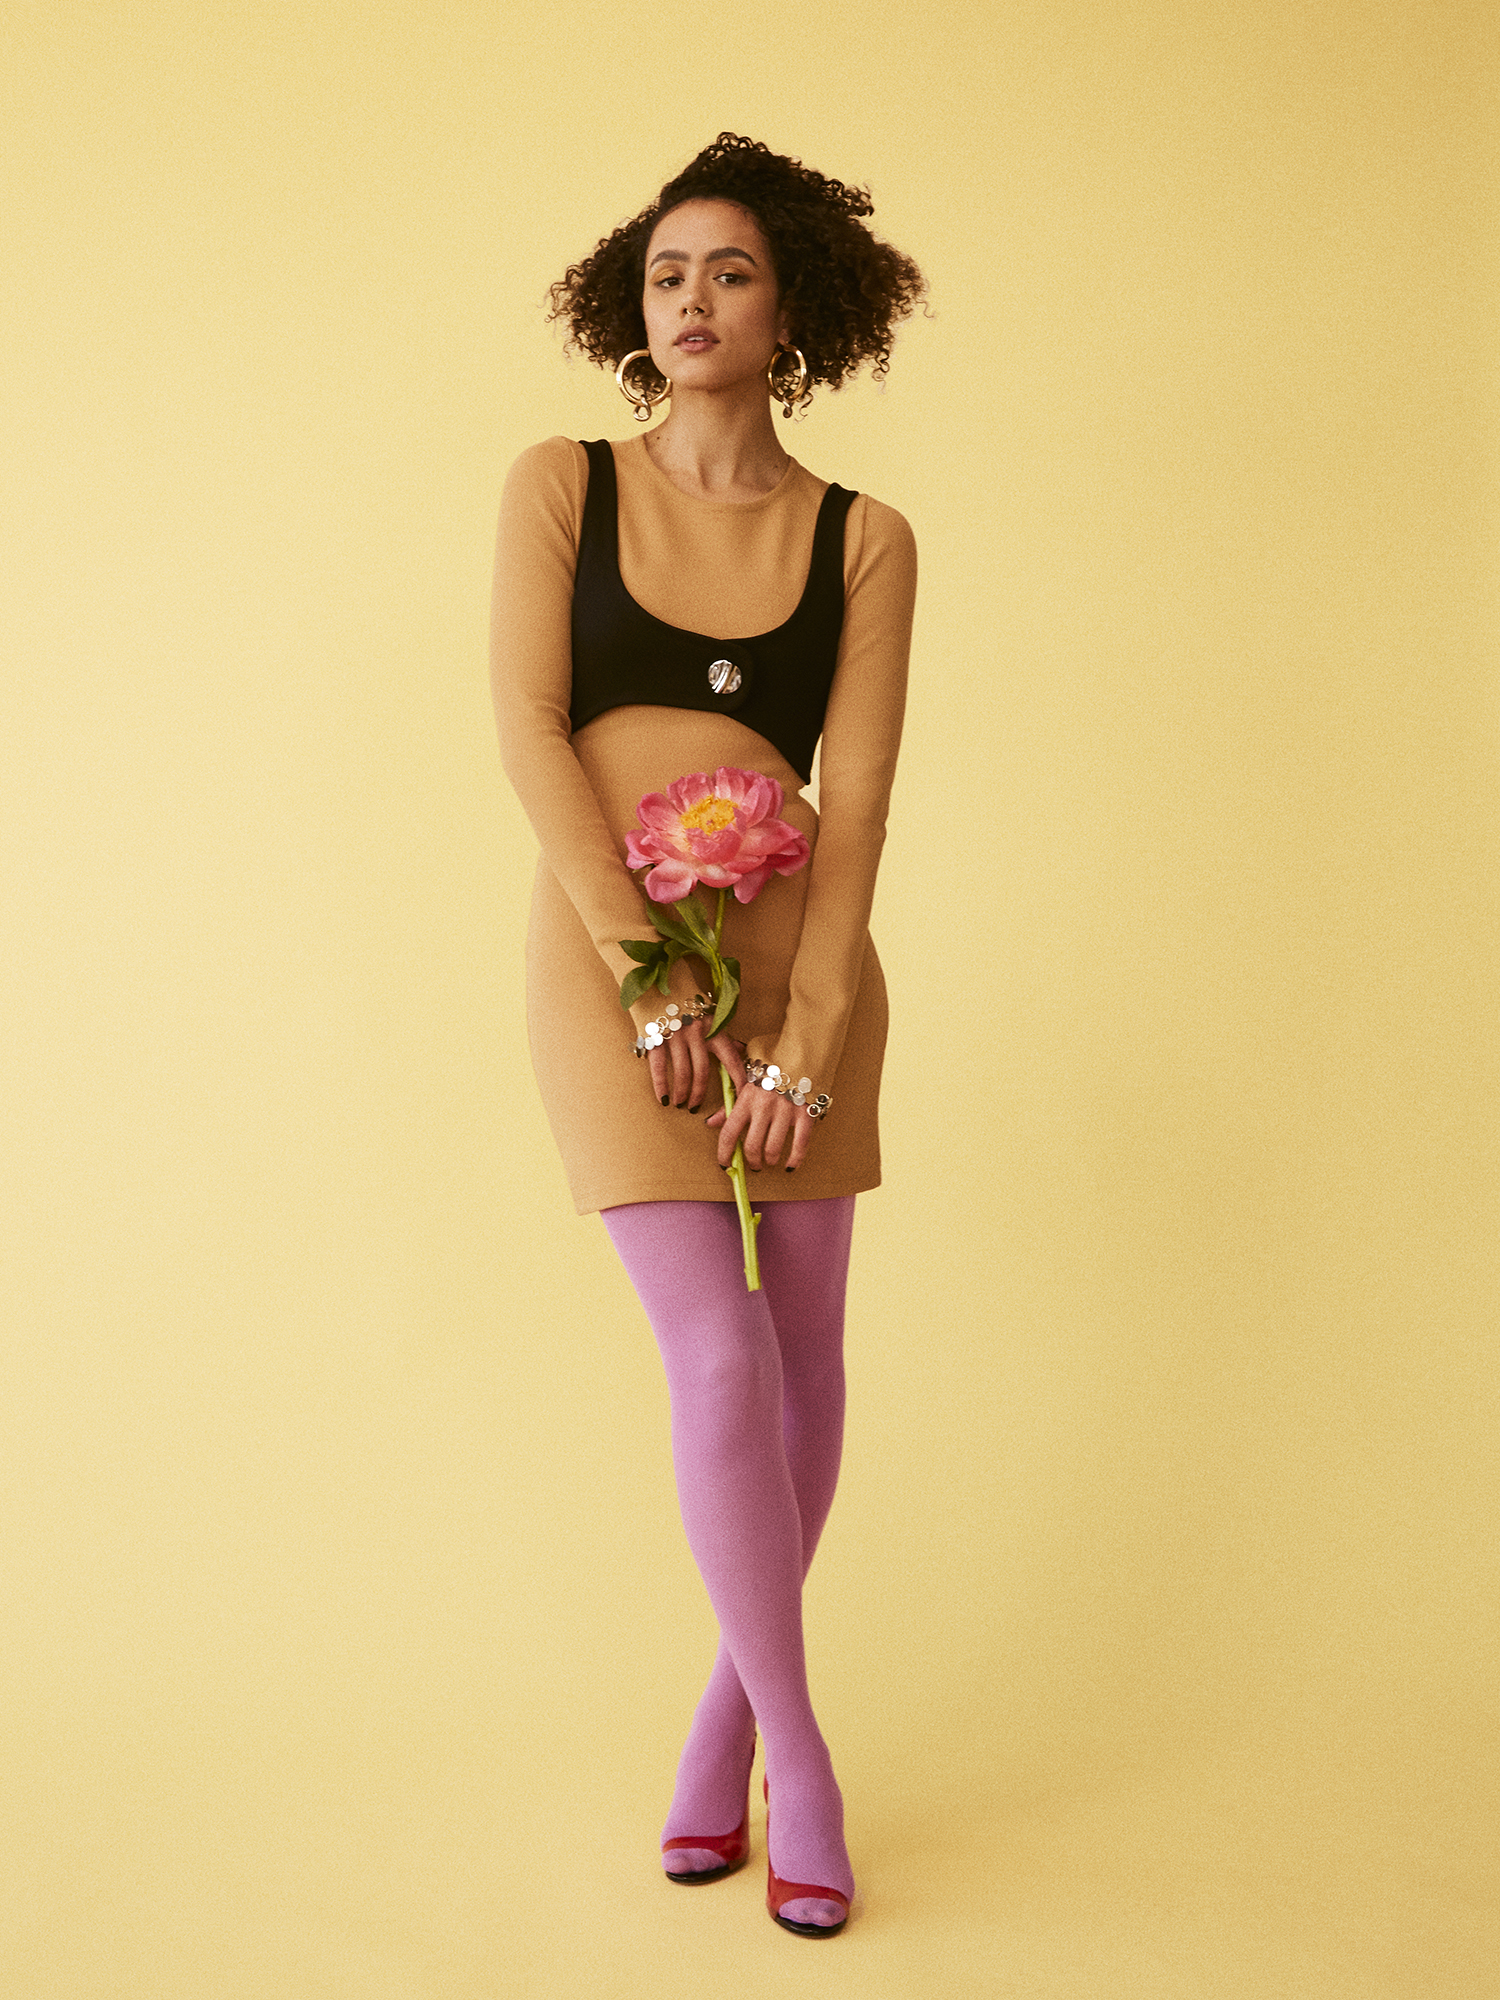 Dress by   3.1 PHILLIP LIM  ; Tights by   WE LOVE COLORS  ; Shoes by   ALEXANDRE VAUTHIER  ; Earrings by   LAURA LOMBARDI